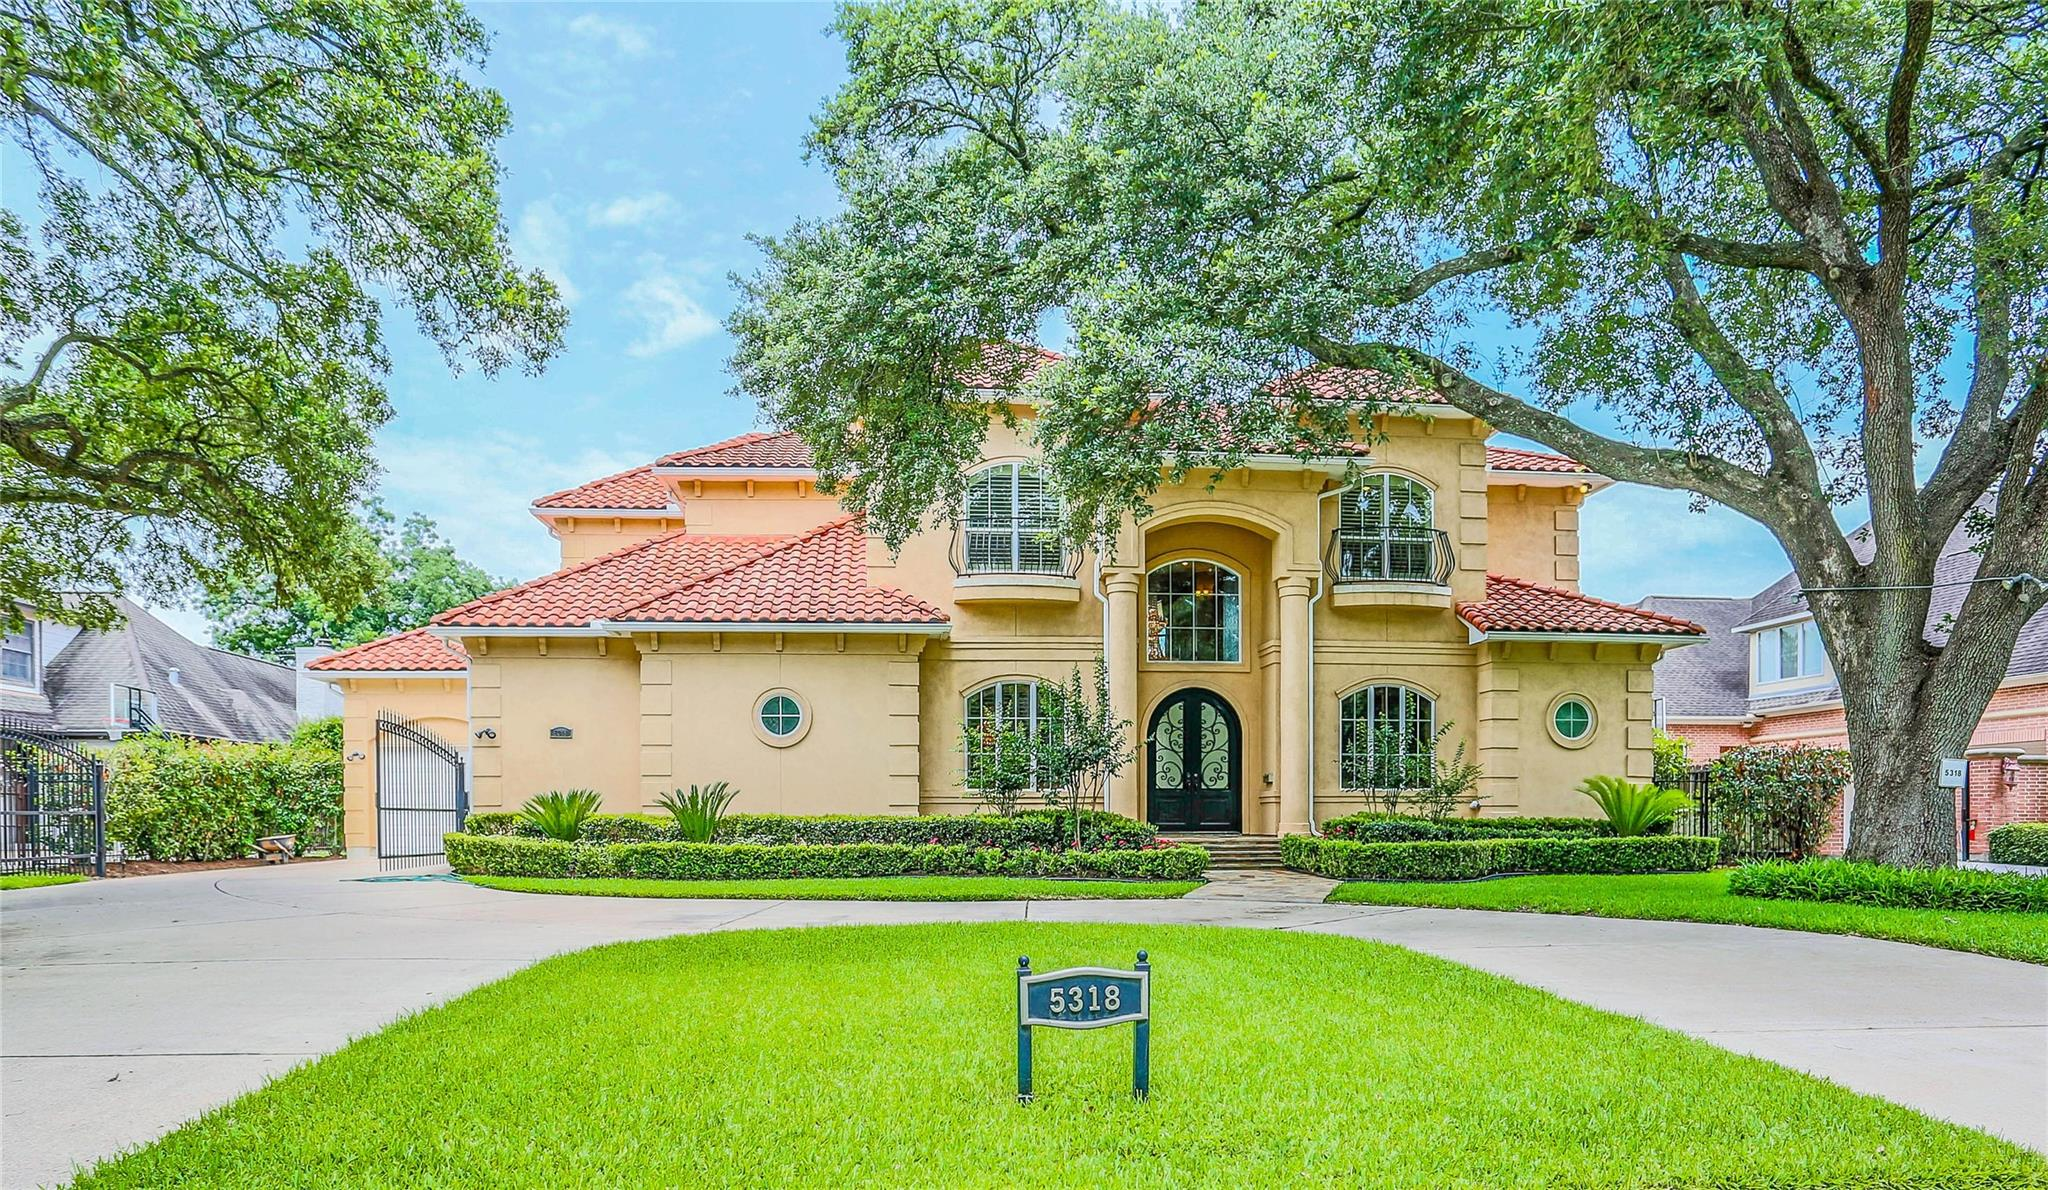 5318 Pine Street Property Photo - Bellaire, TX real estate listing